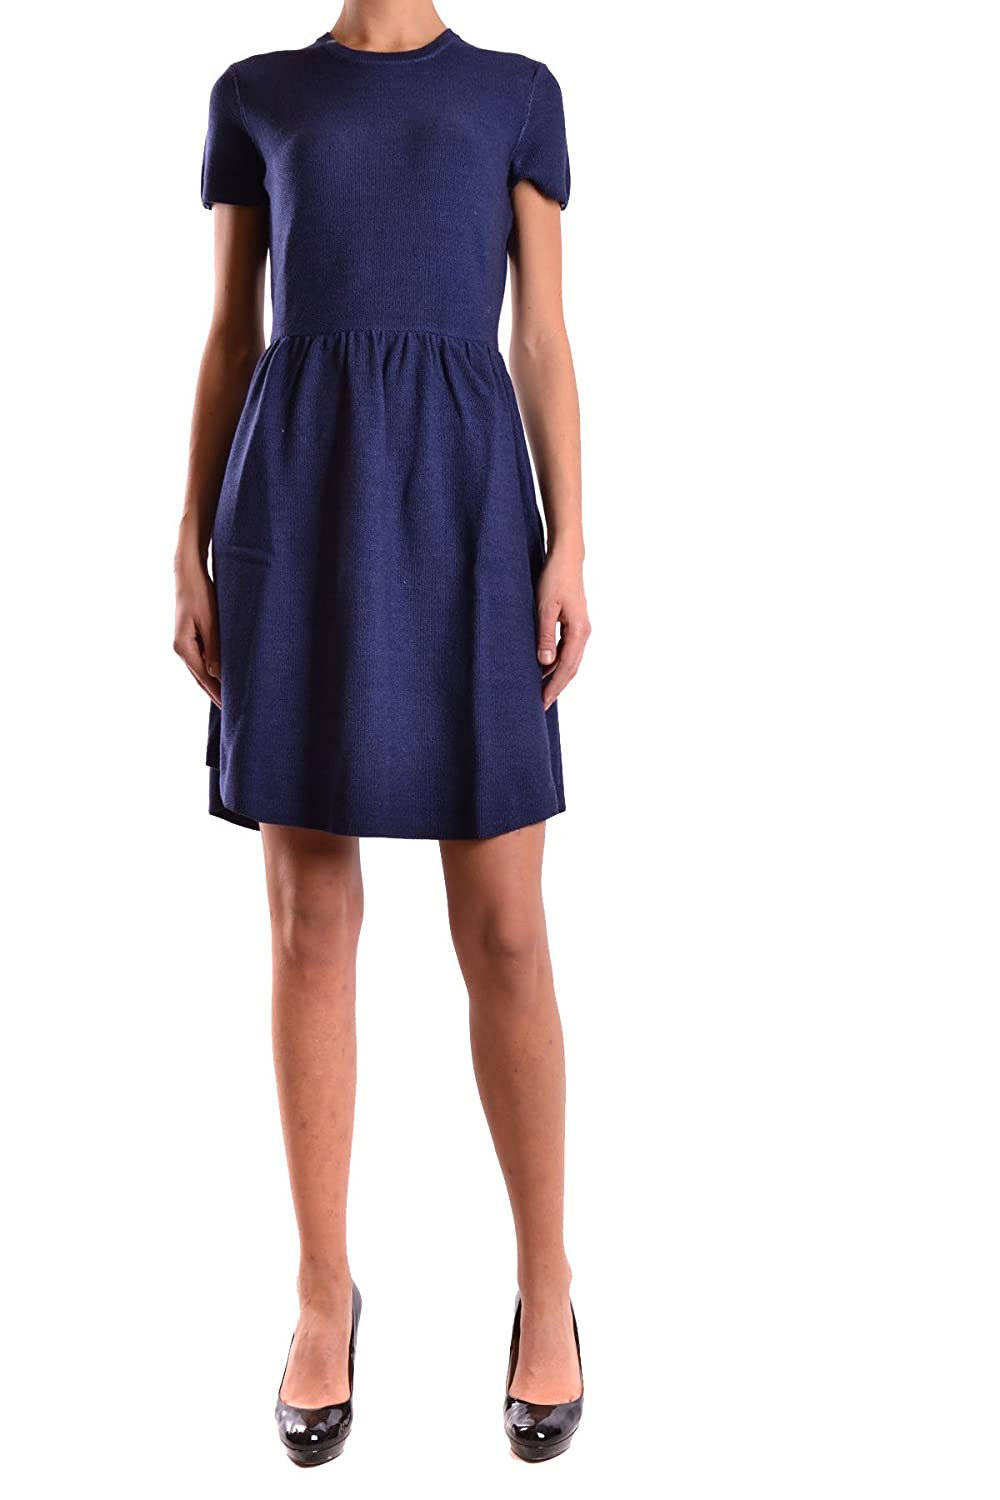 SUN 68 WOMEN'S MCBI286016O BLUE WOOL DRESS